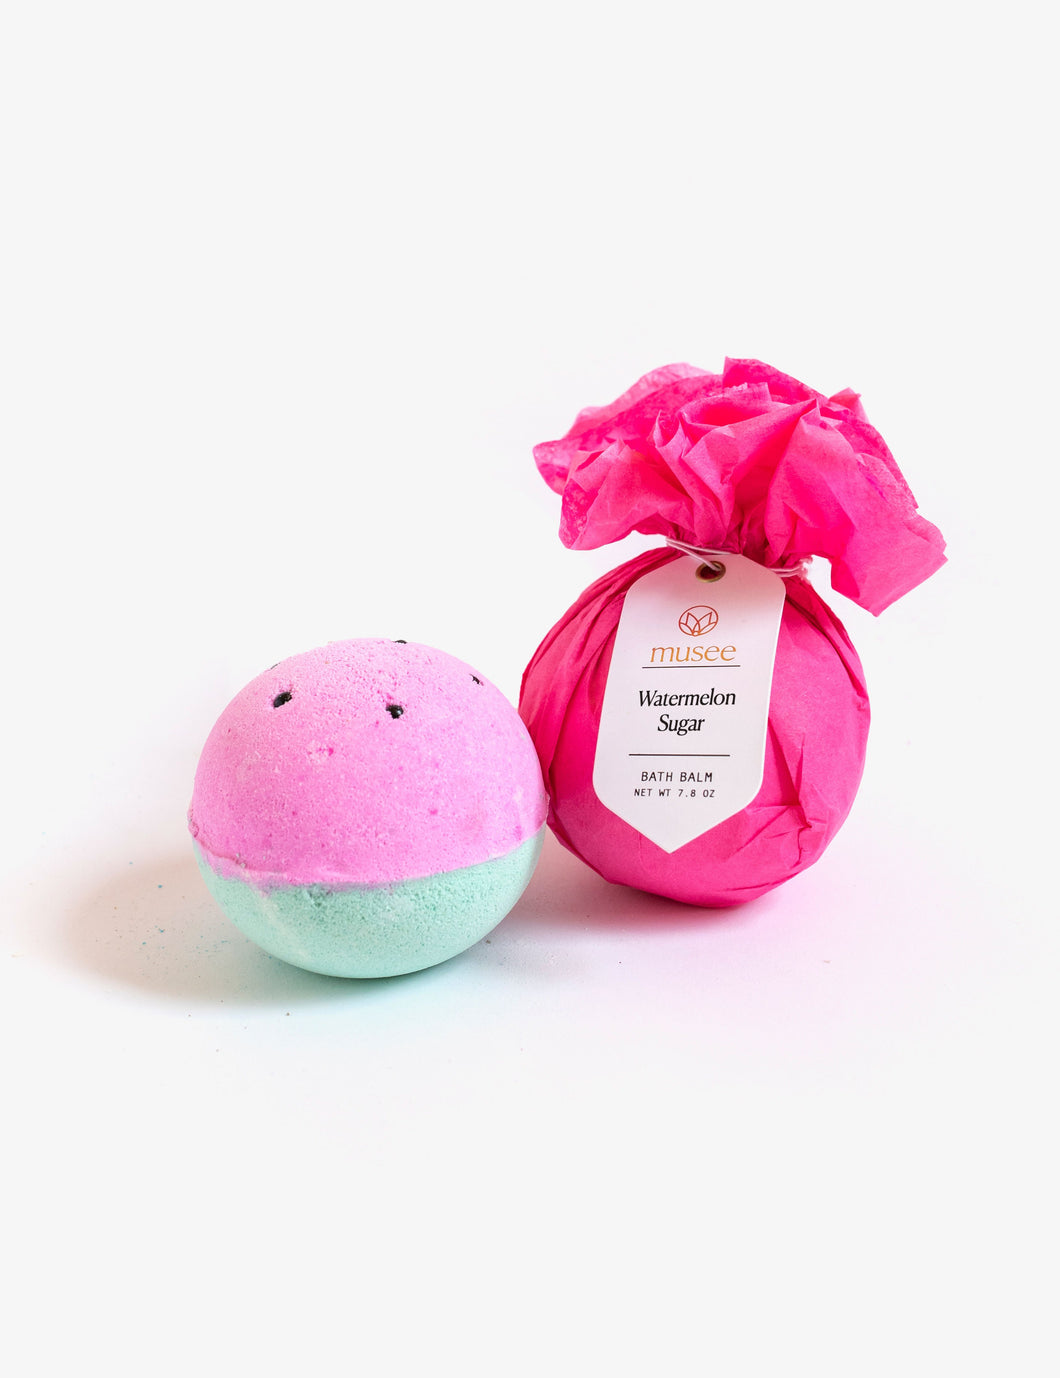 Musee Watermelon Sugar Bath Bomb